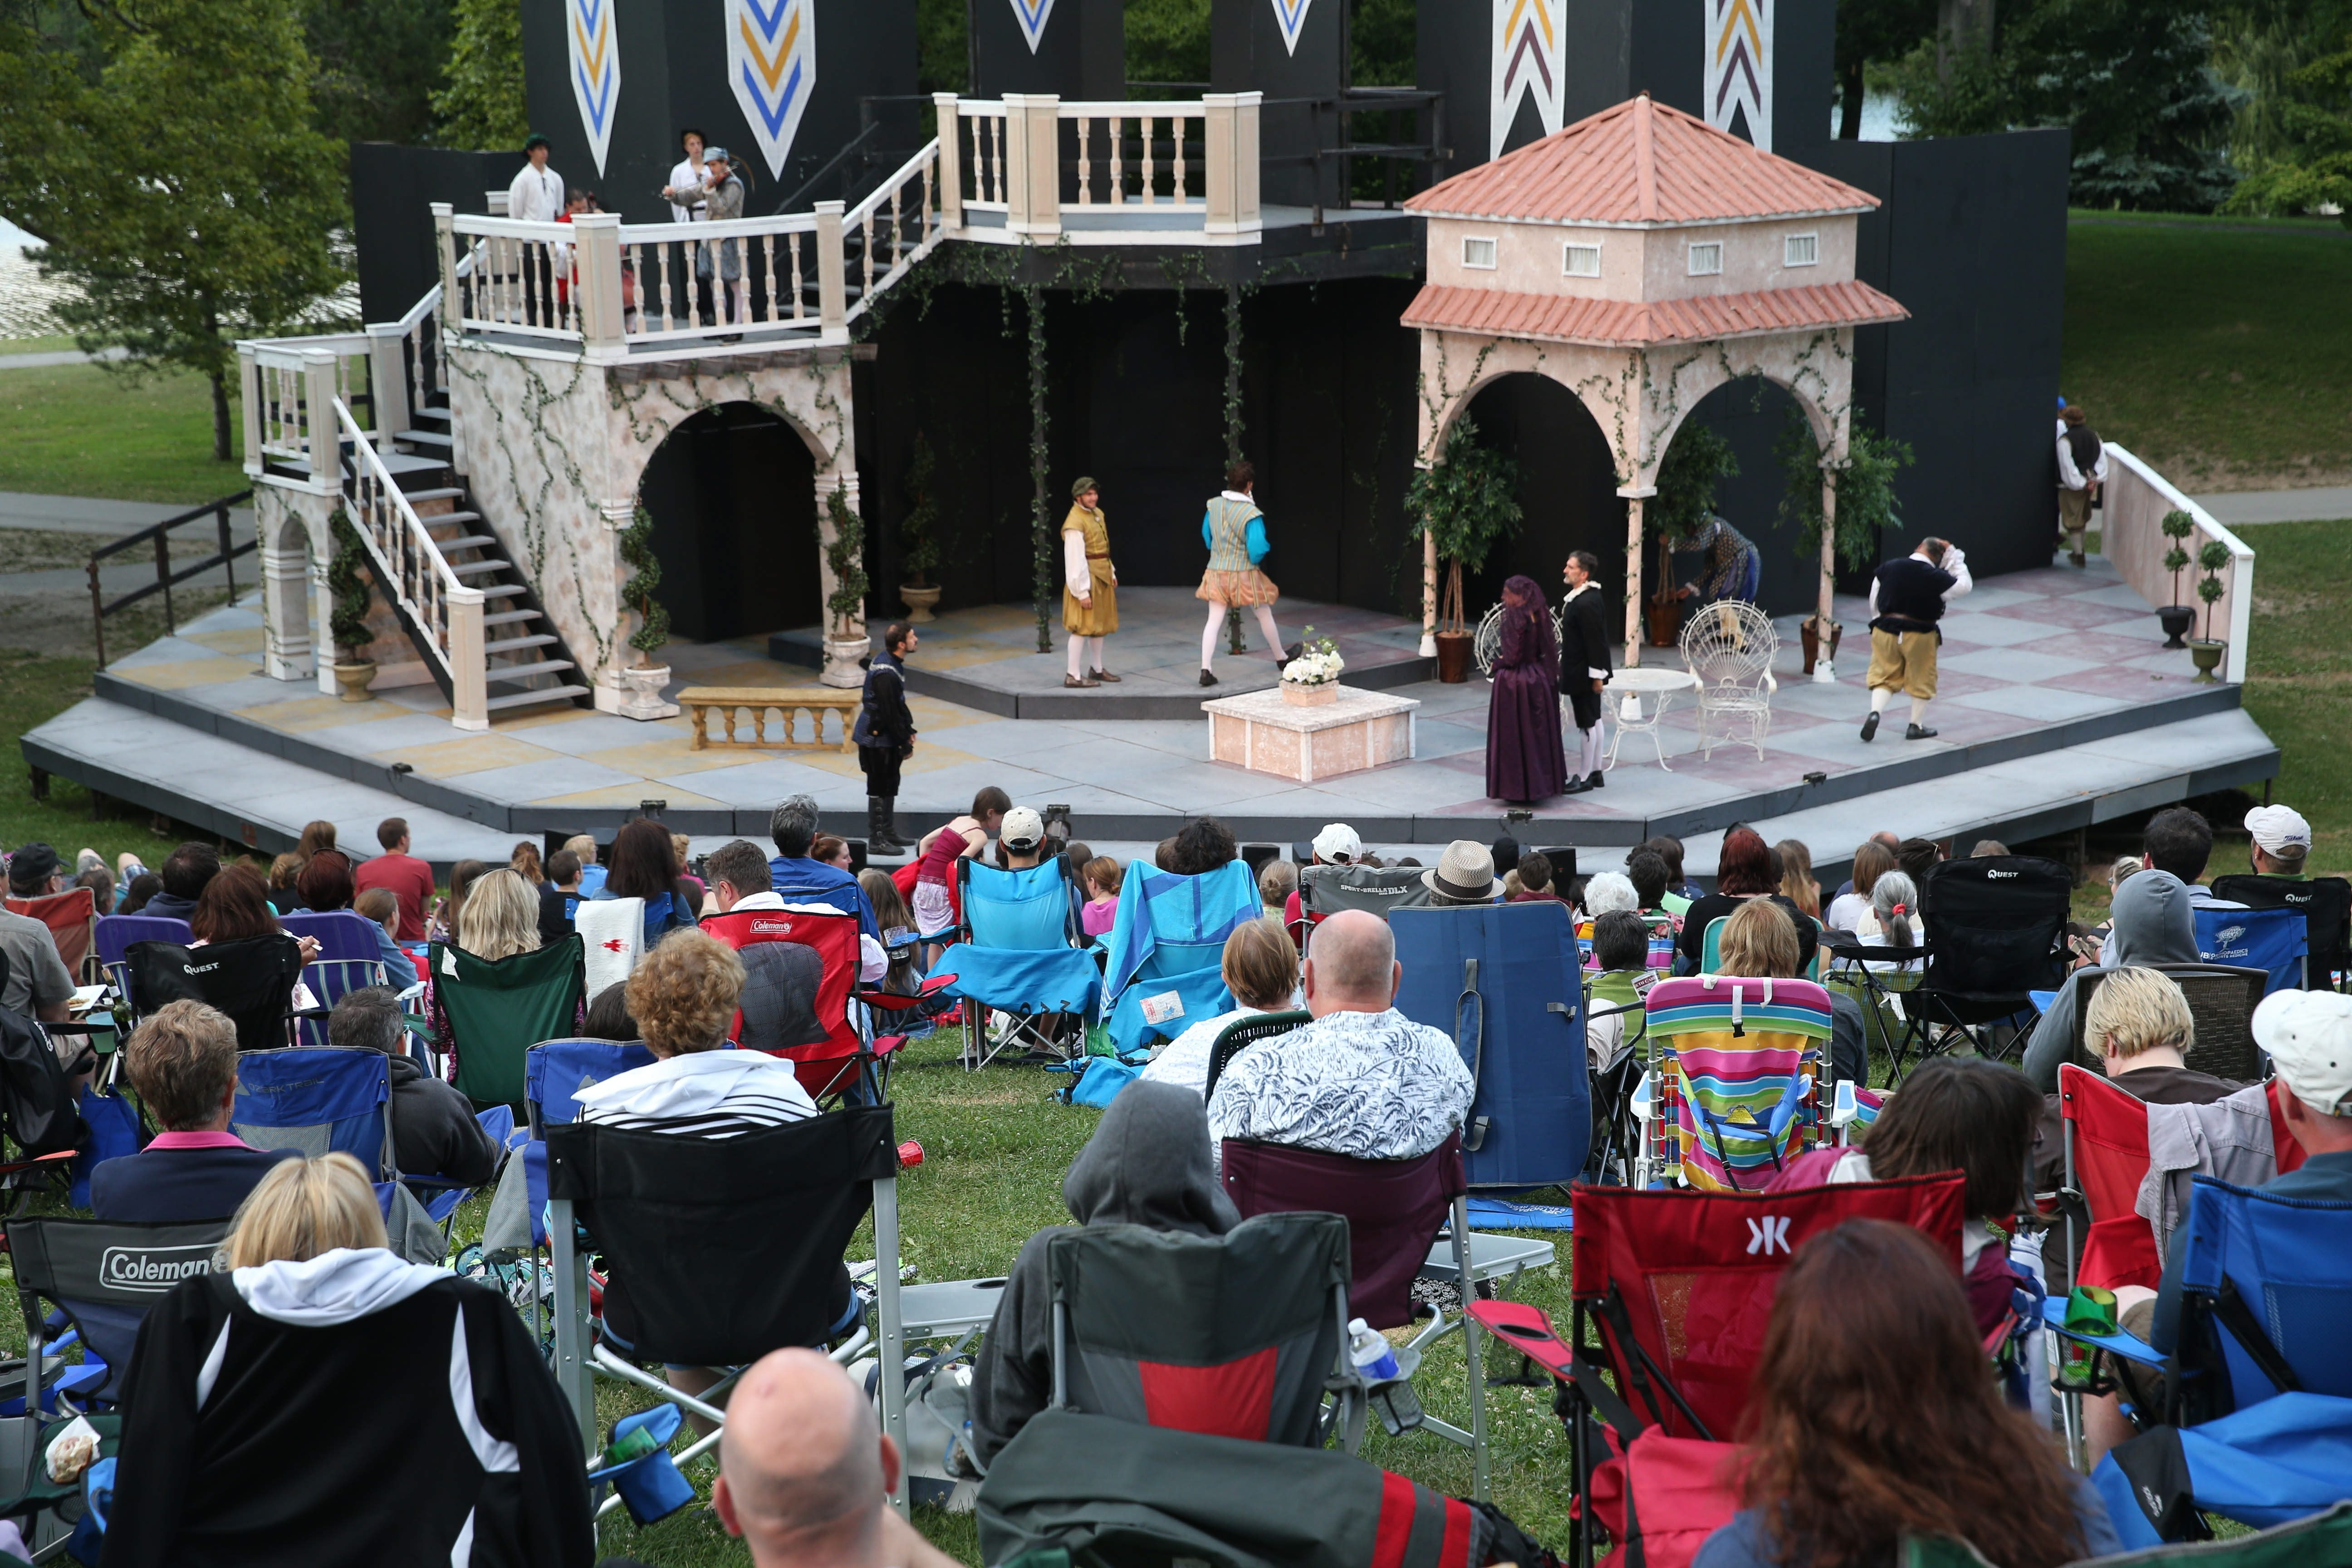 Part of the experience of Shakepeare in the Park at Delaware Park is bringing a picnic to enjoy before and during the performance.  A good crowd shows up for 'Twelfth Night,' Saturday, Aug. 1, 2015.  (Sharon Cantillon/Buffalo News)